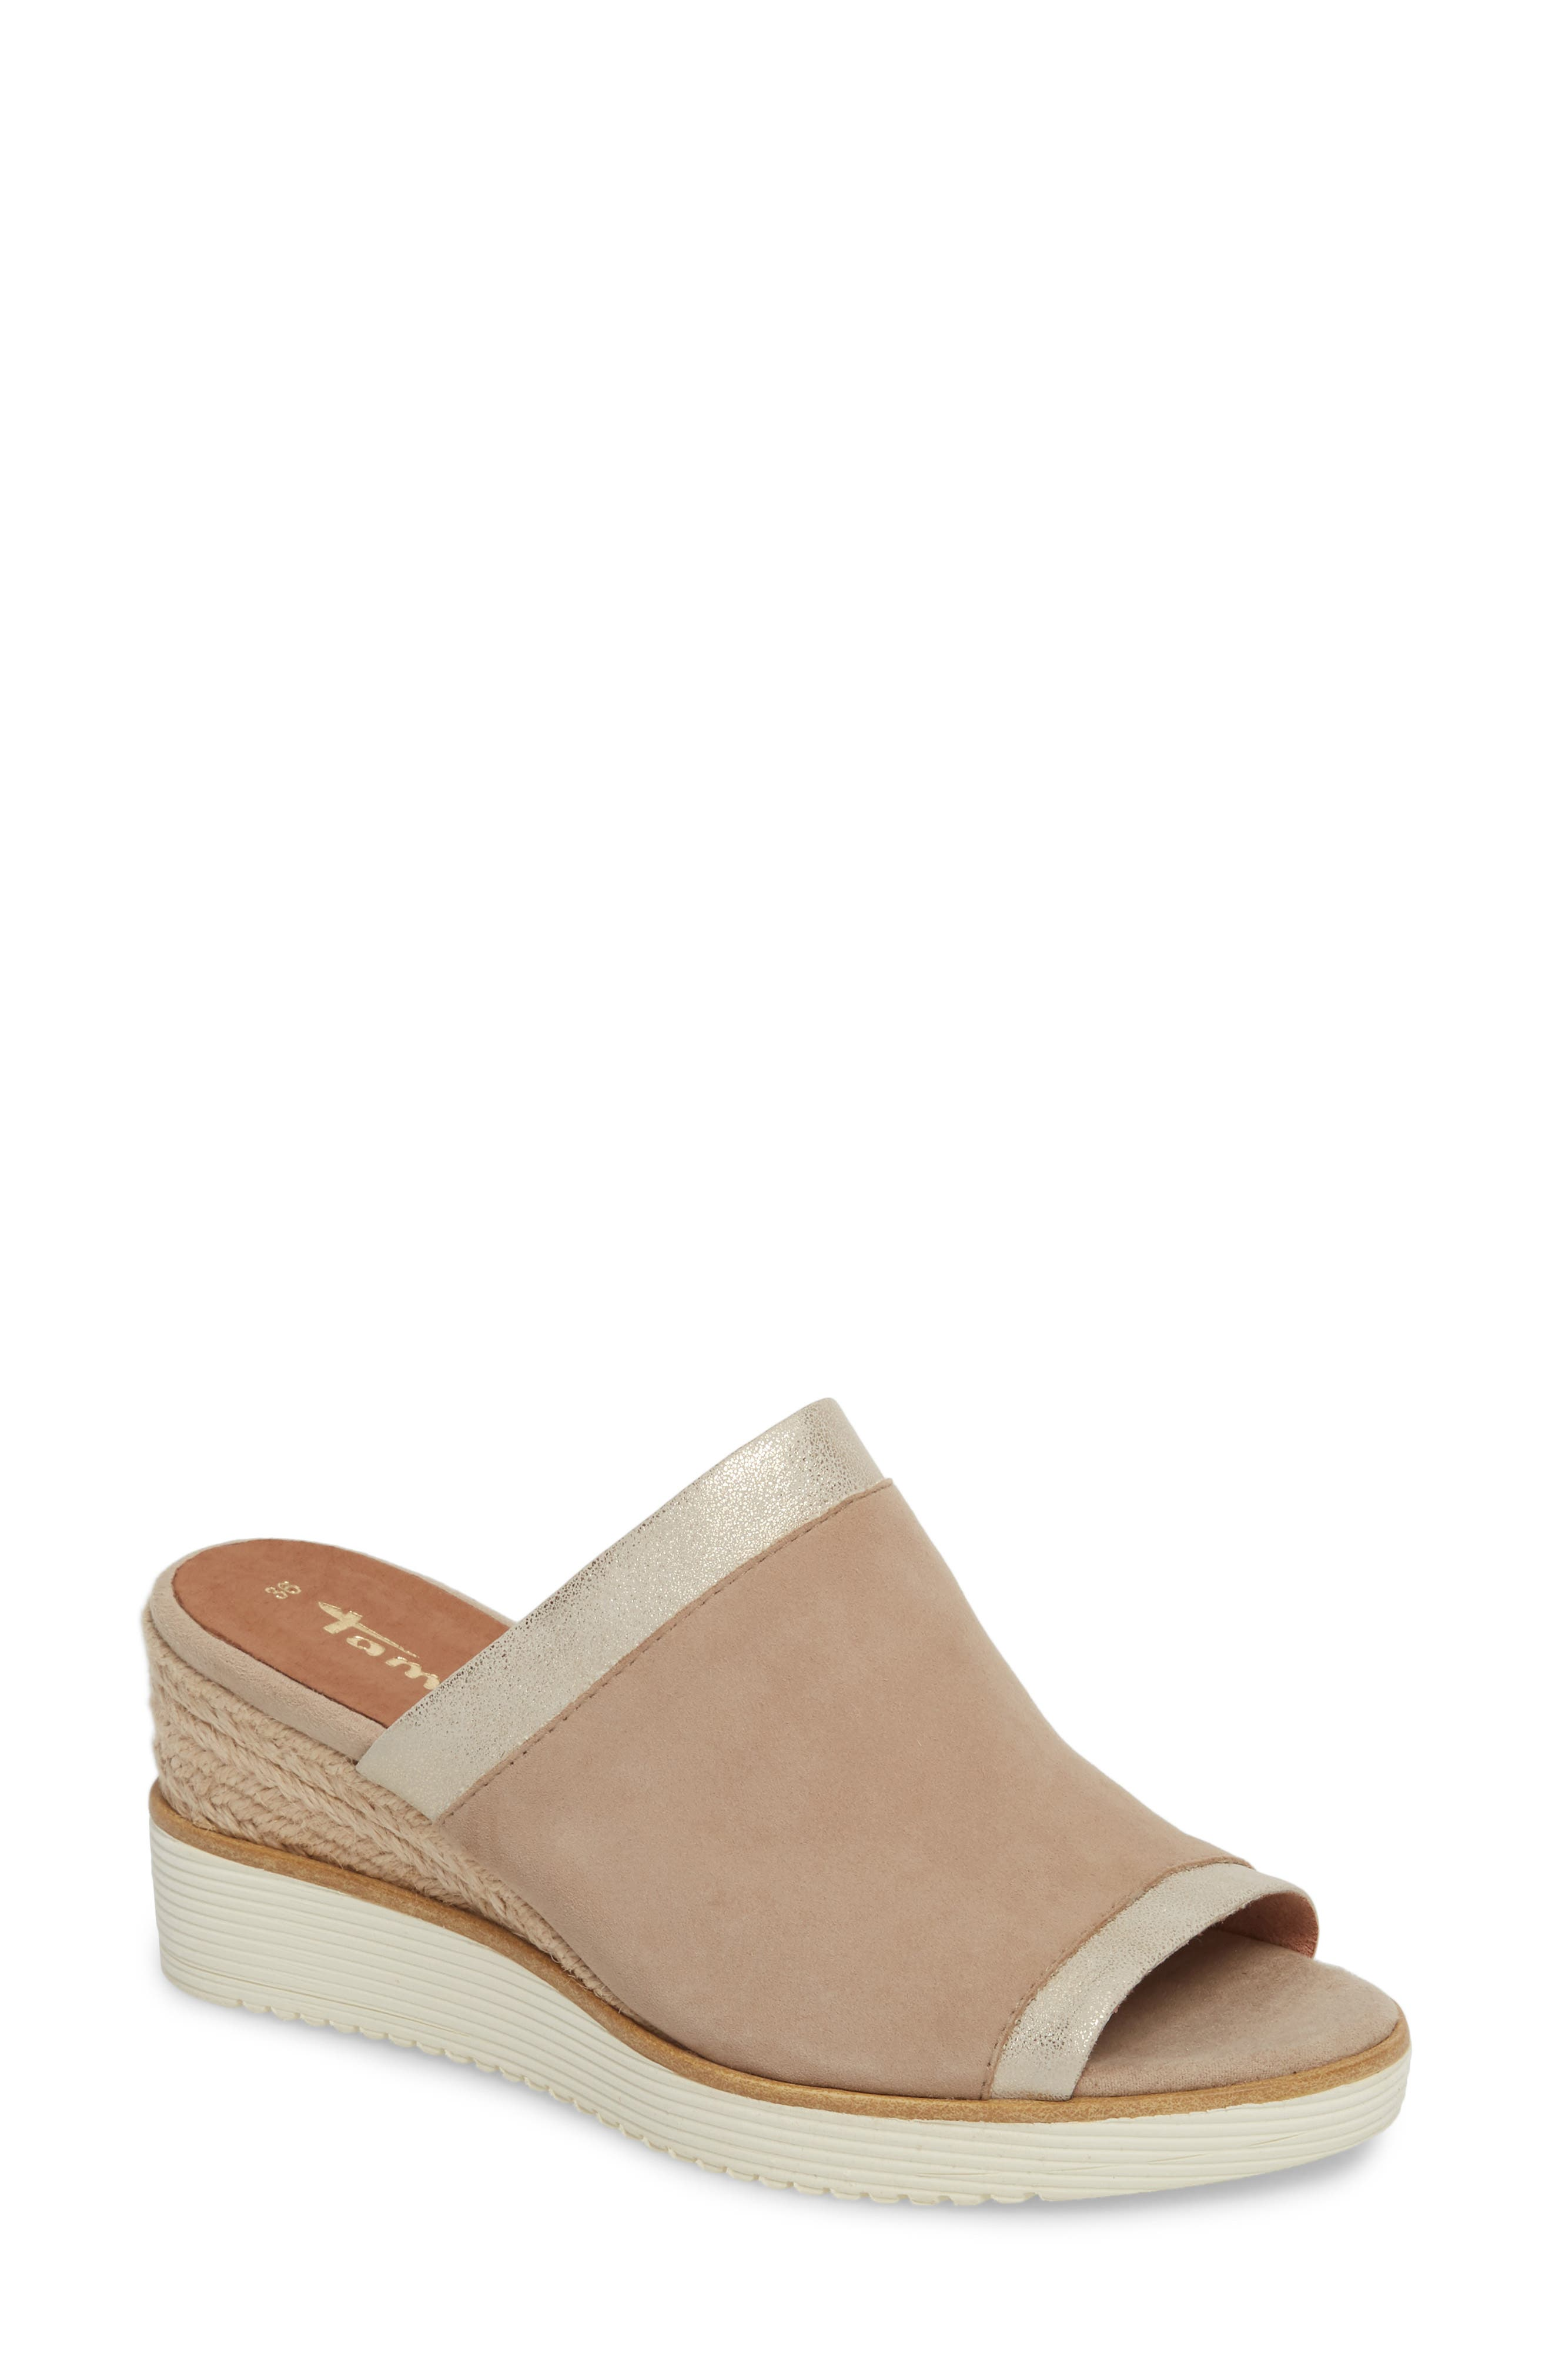 Alis Wedge Sandal,                             Main thumbnail 1, color,                             Shell Leather